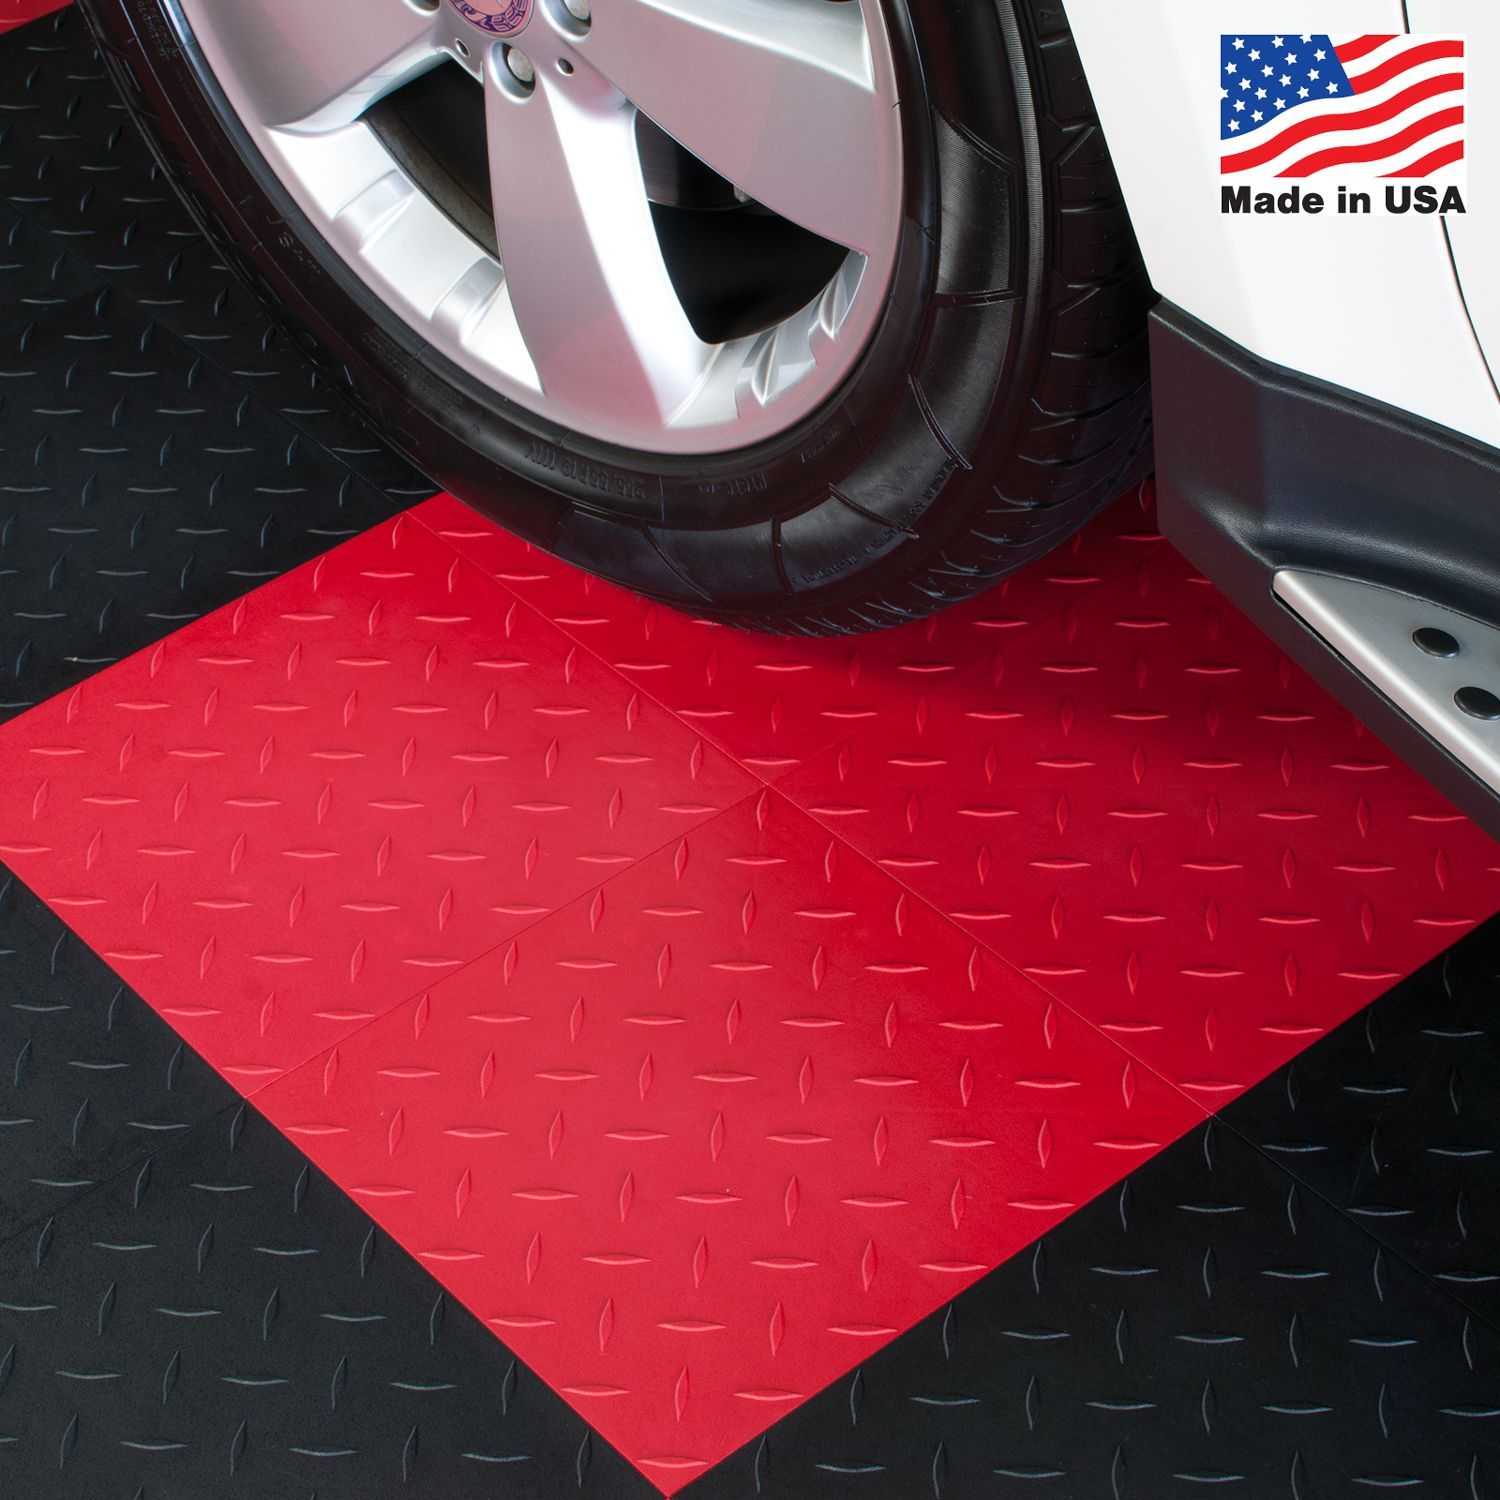 Blocktile garage flooring interlocking diamond top tiles pack of combining form and function this set of interlocking floor tiles is available in varying colors dailygadgetfo Image collections